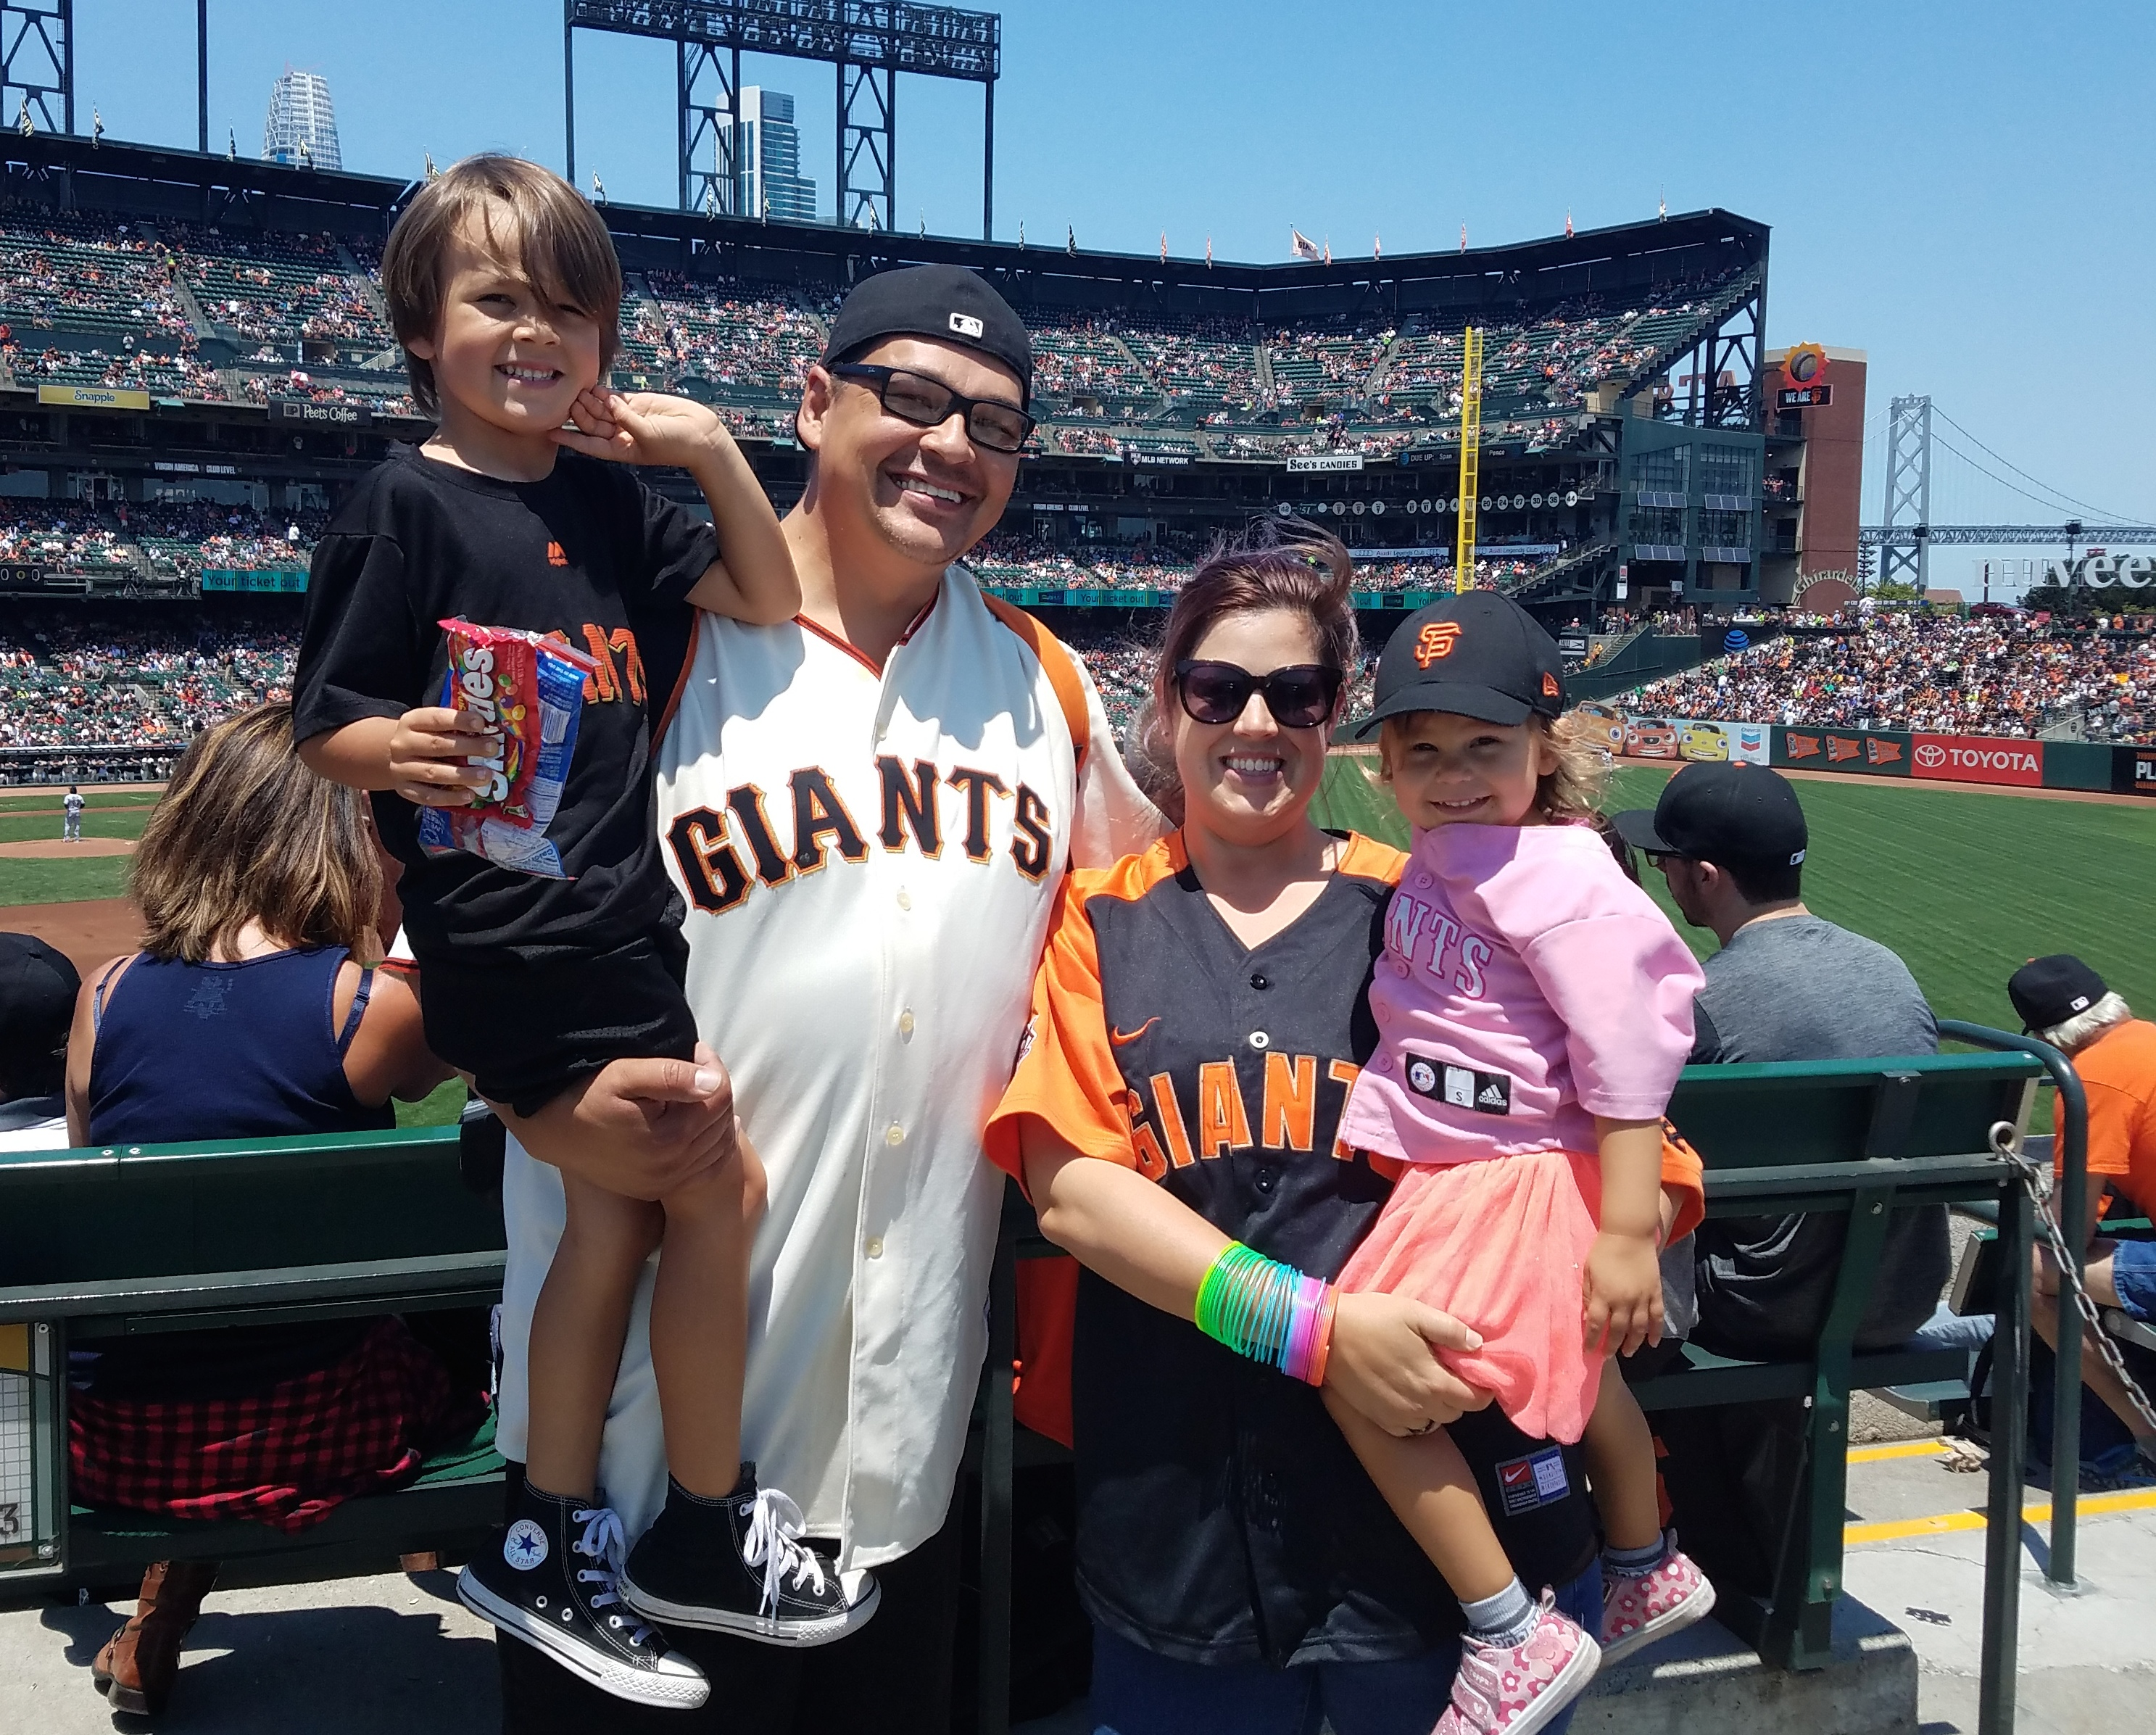 a family of four at a baseball game